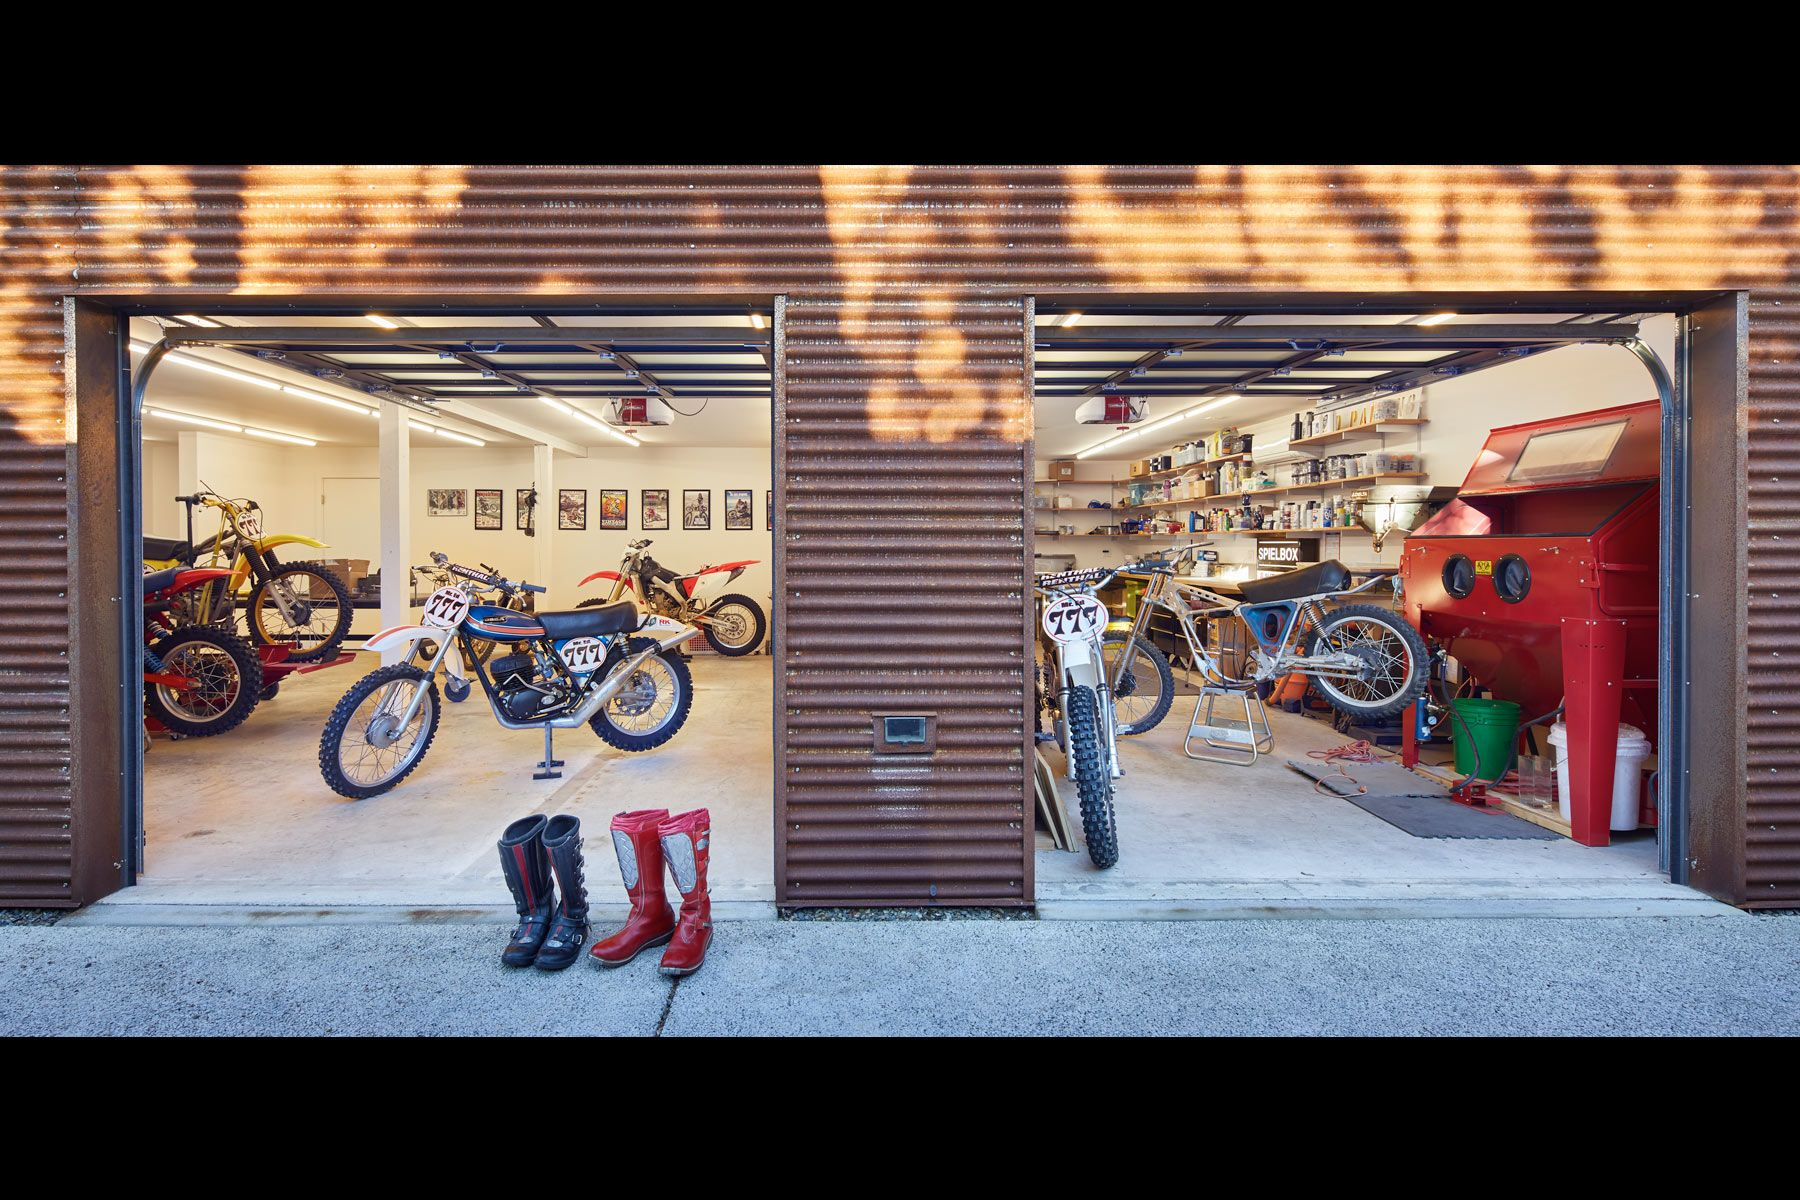 workshop, man cave, moto, dirtbike, seattle architecture